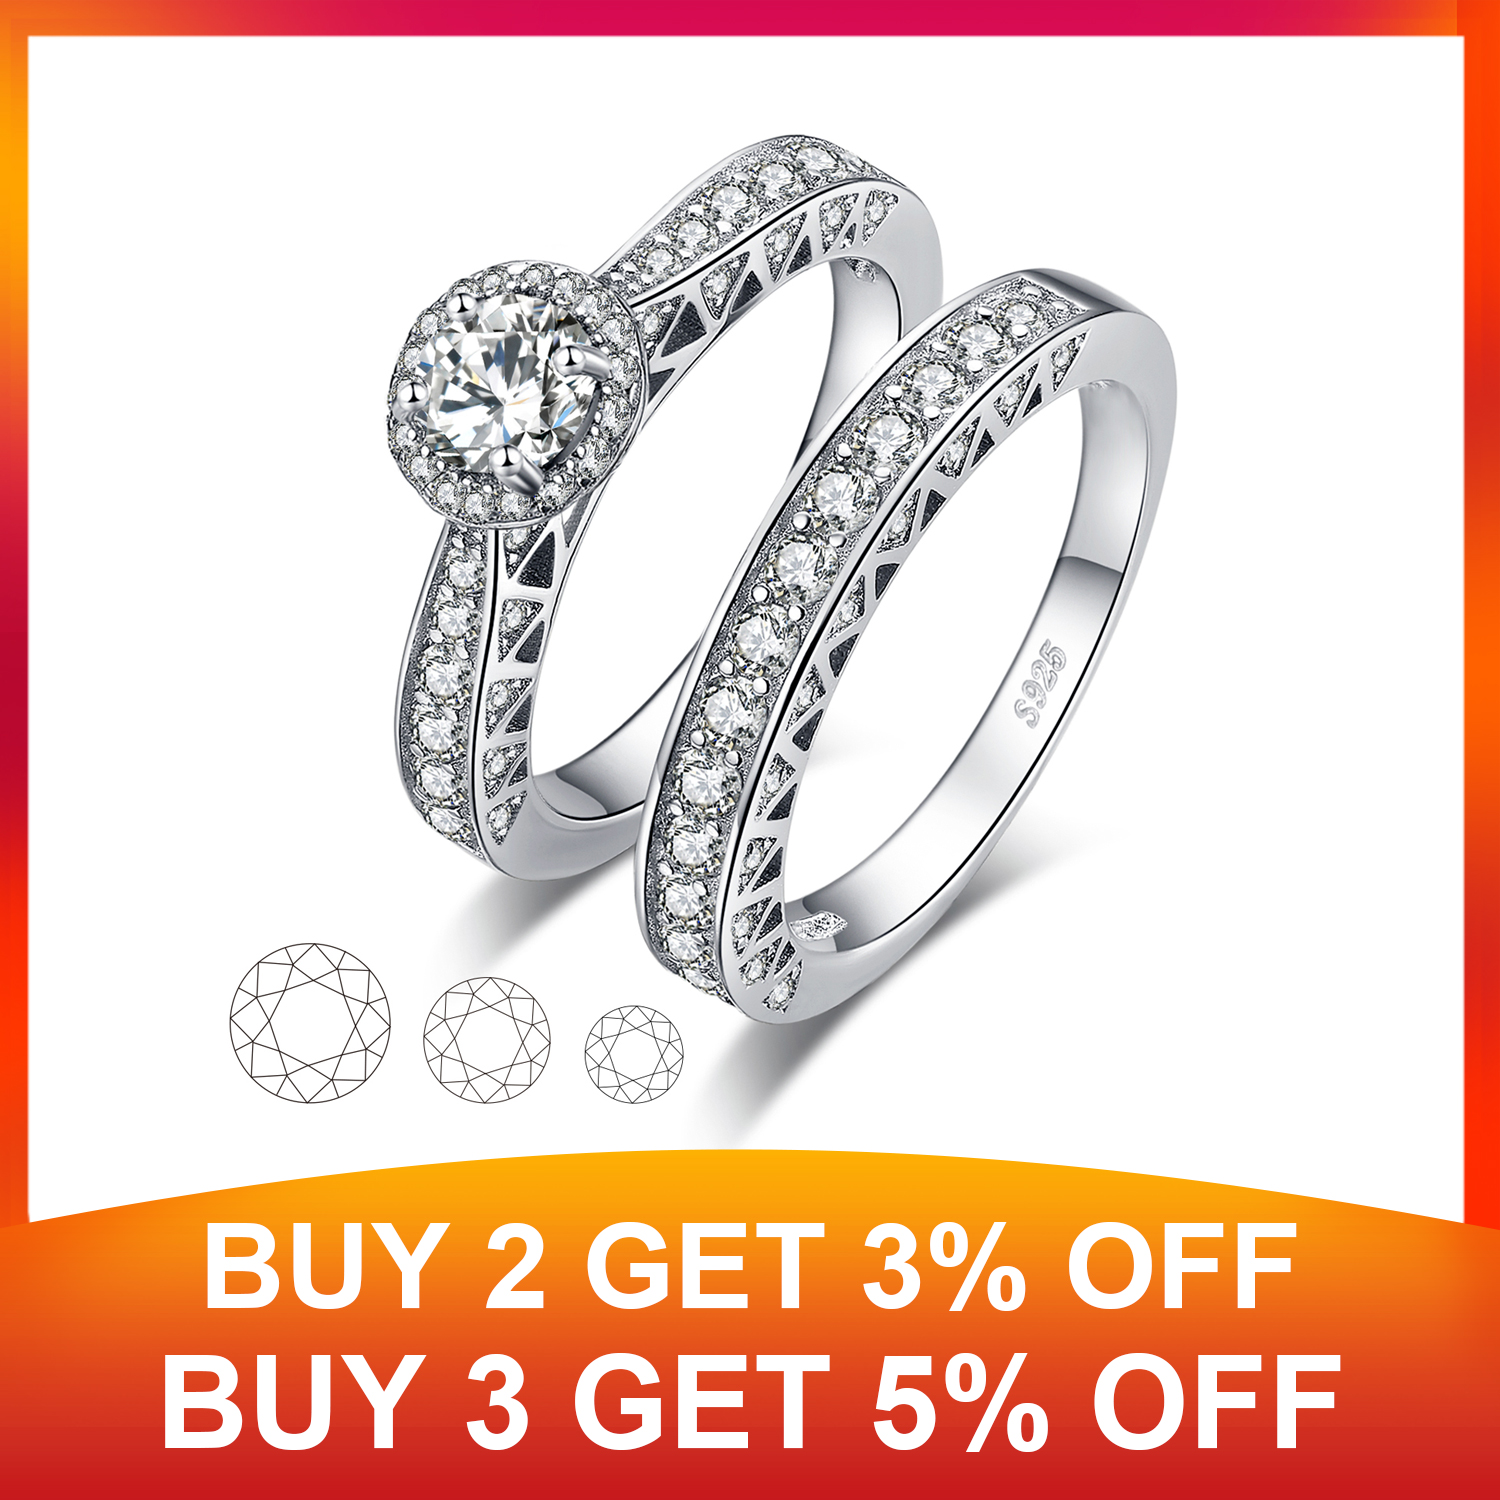 Vintage Engagement Ring Set 925 Sterling Silver Rings for Women Anniversary Wedding Rings Bands Bridal Sets Silver 925 Jewelry in Rings from Jewelry Accessories